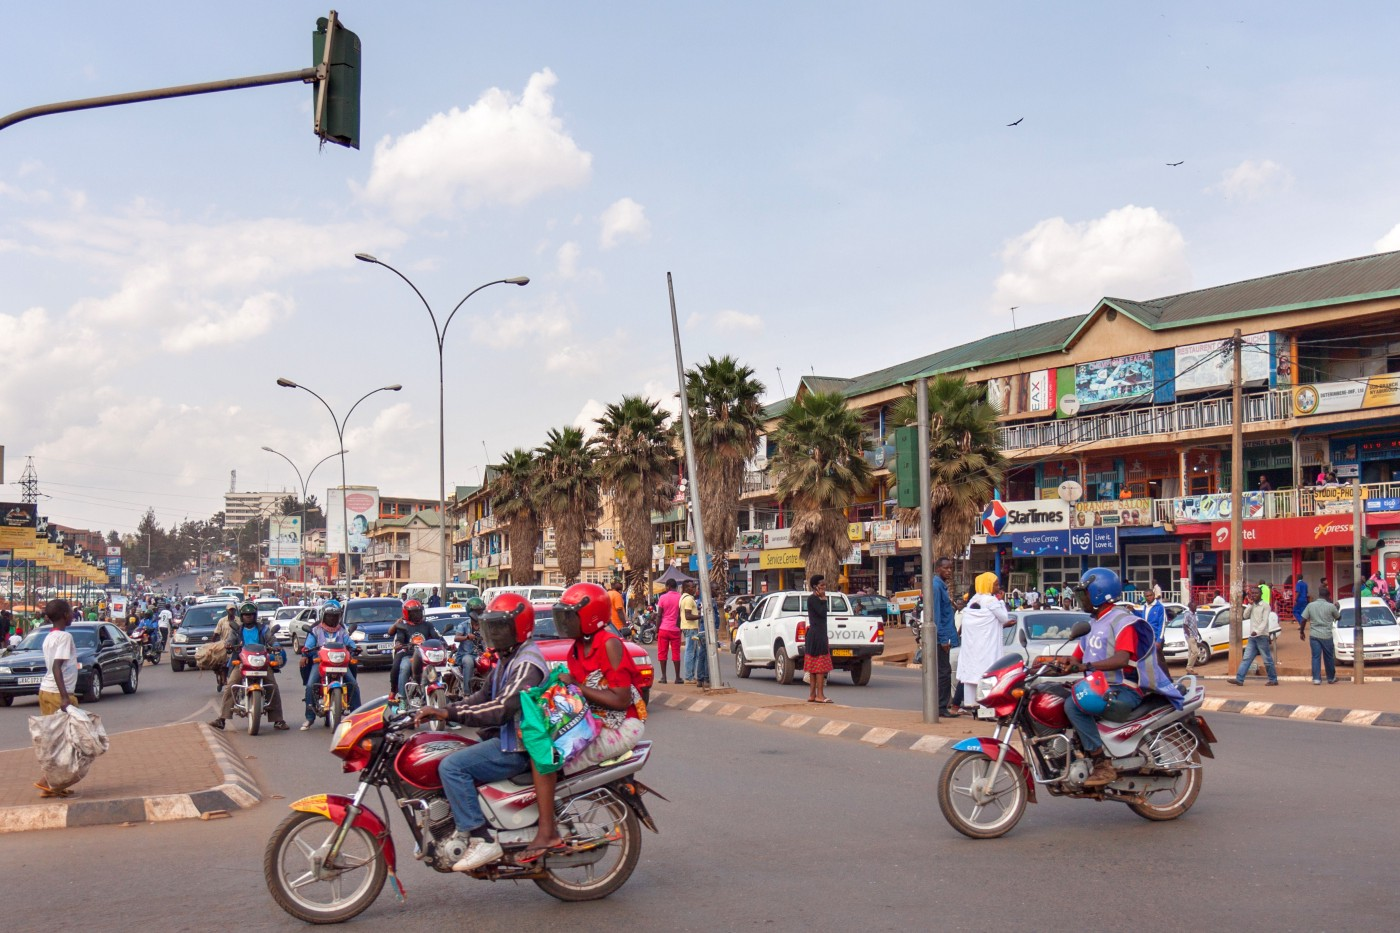 Two motorcycles cross a busy intersection in Kigali, Rwanda